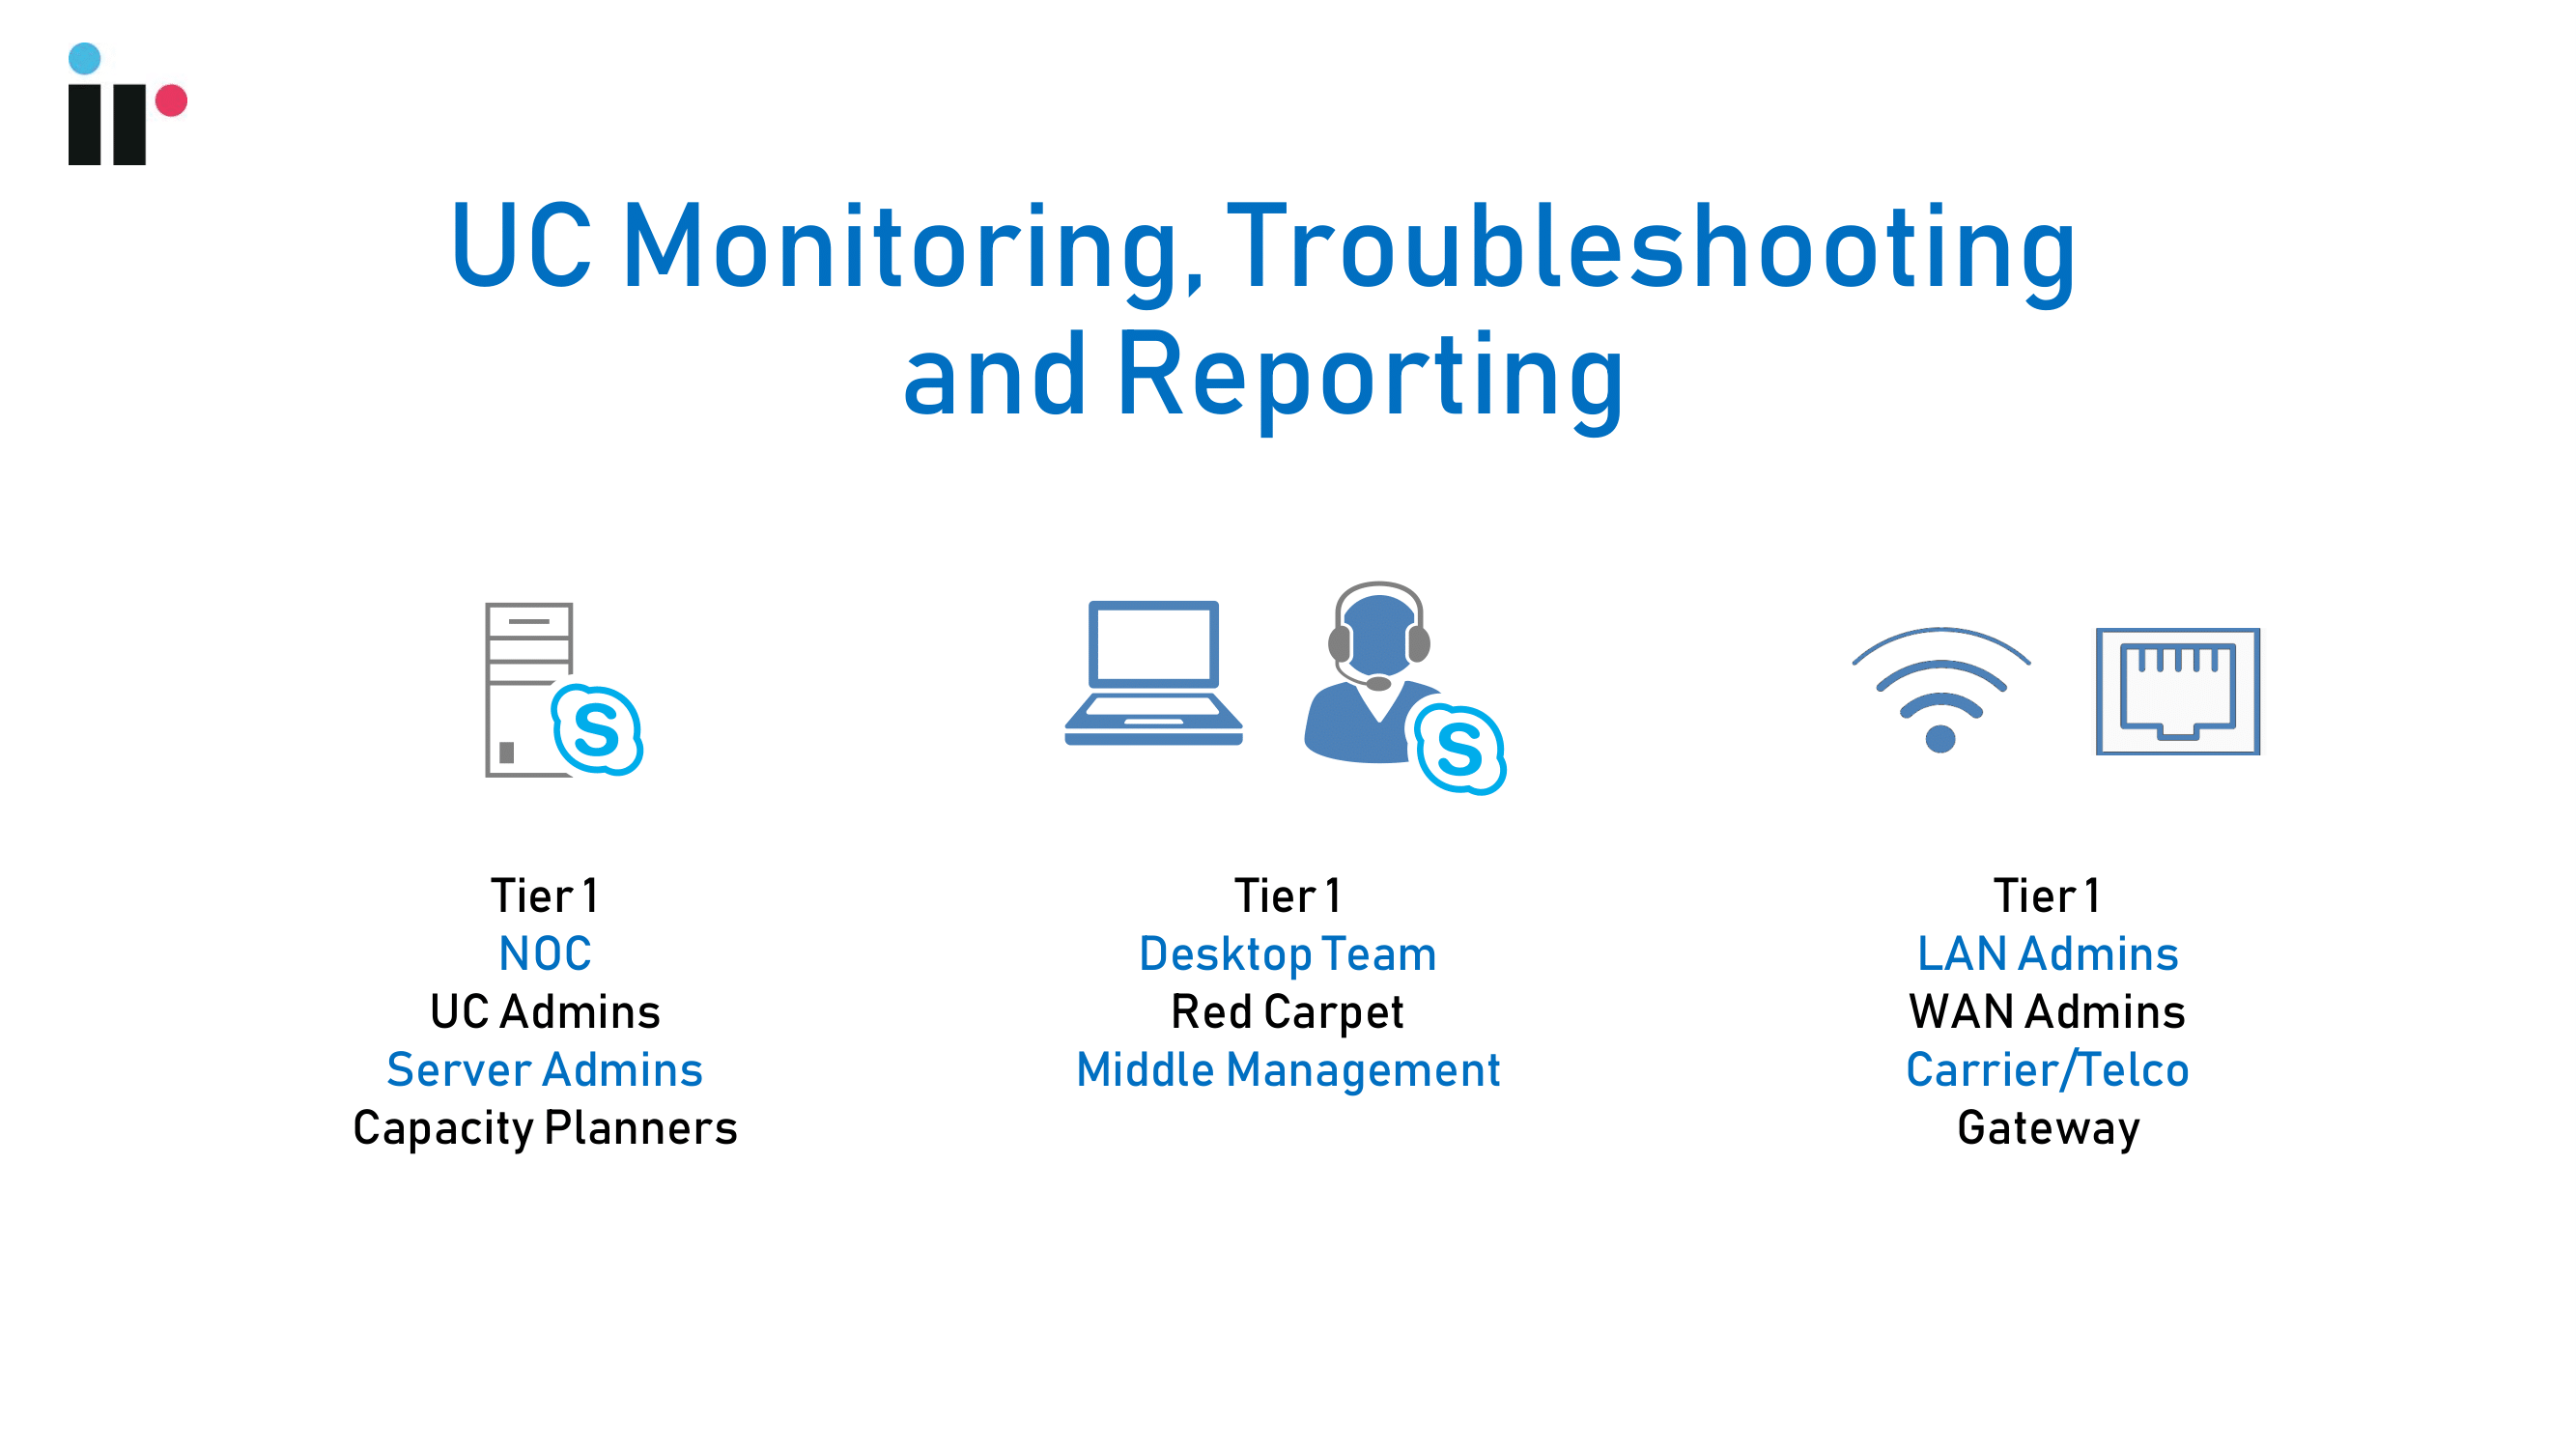 UC Monitoring, Troubleshooting and Reporting